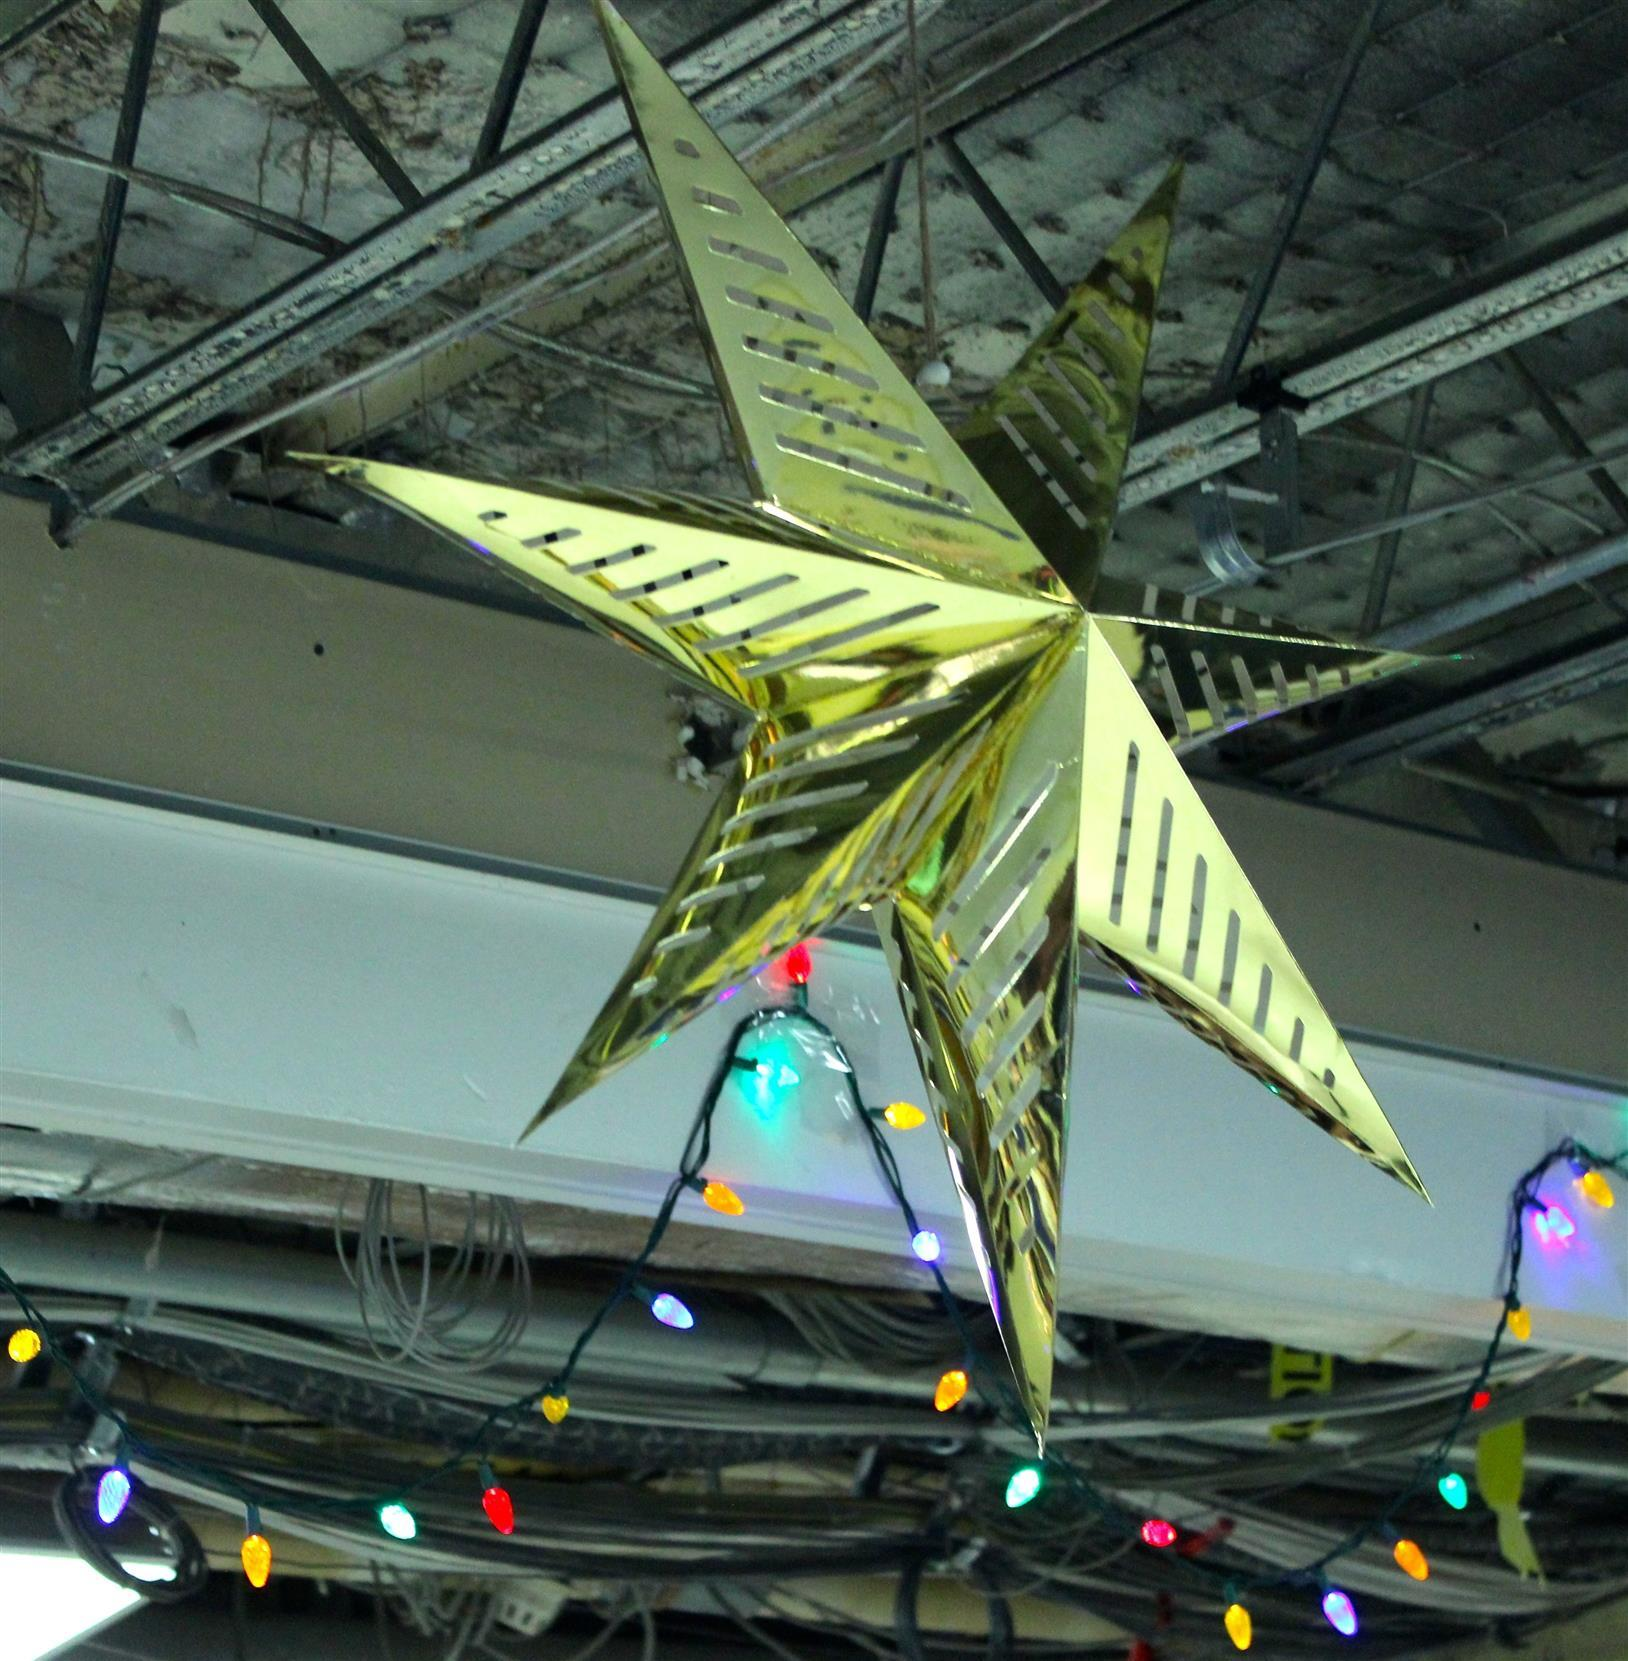 Vibrant lights and a golden star hang from the rafters on Thursday, December 10th.